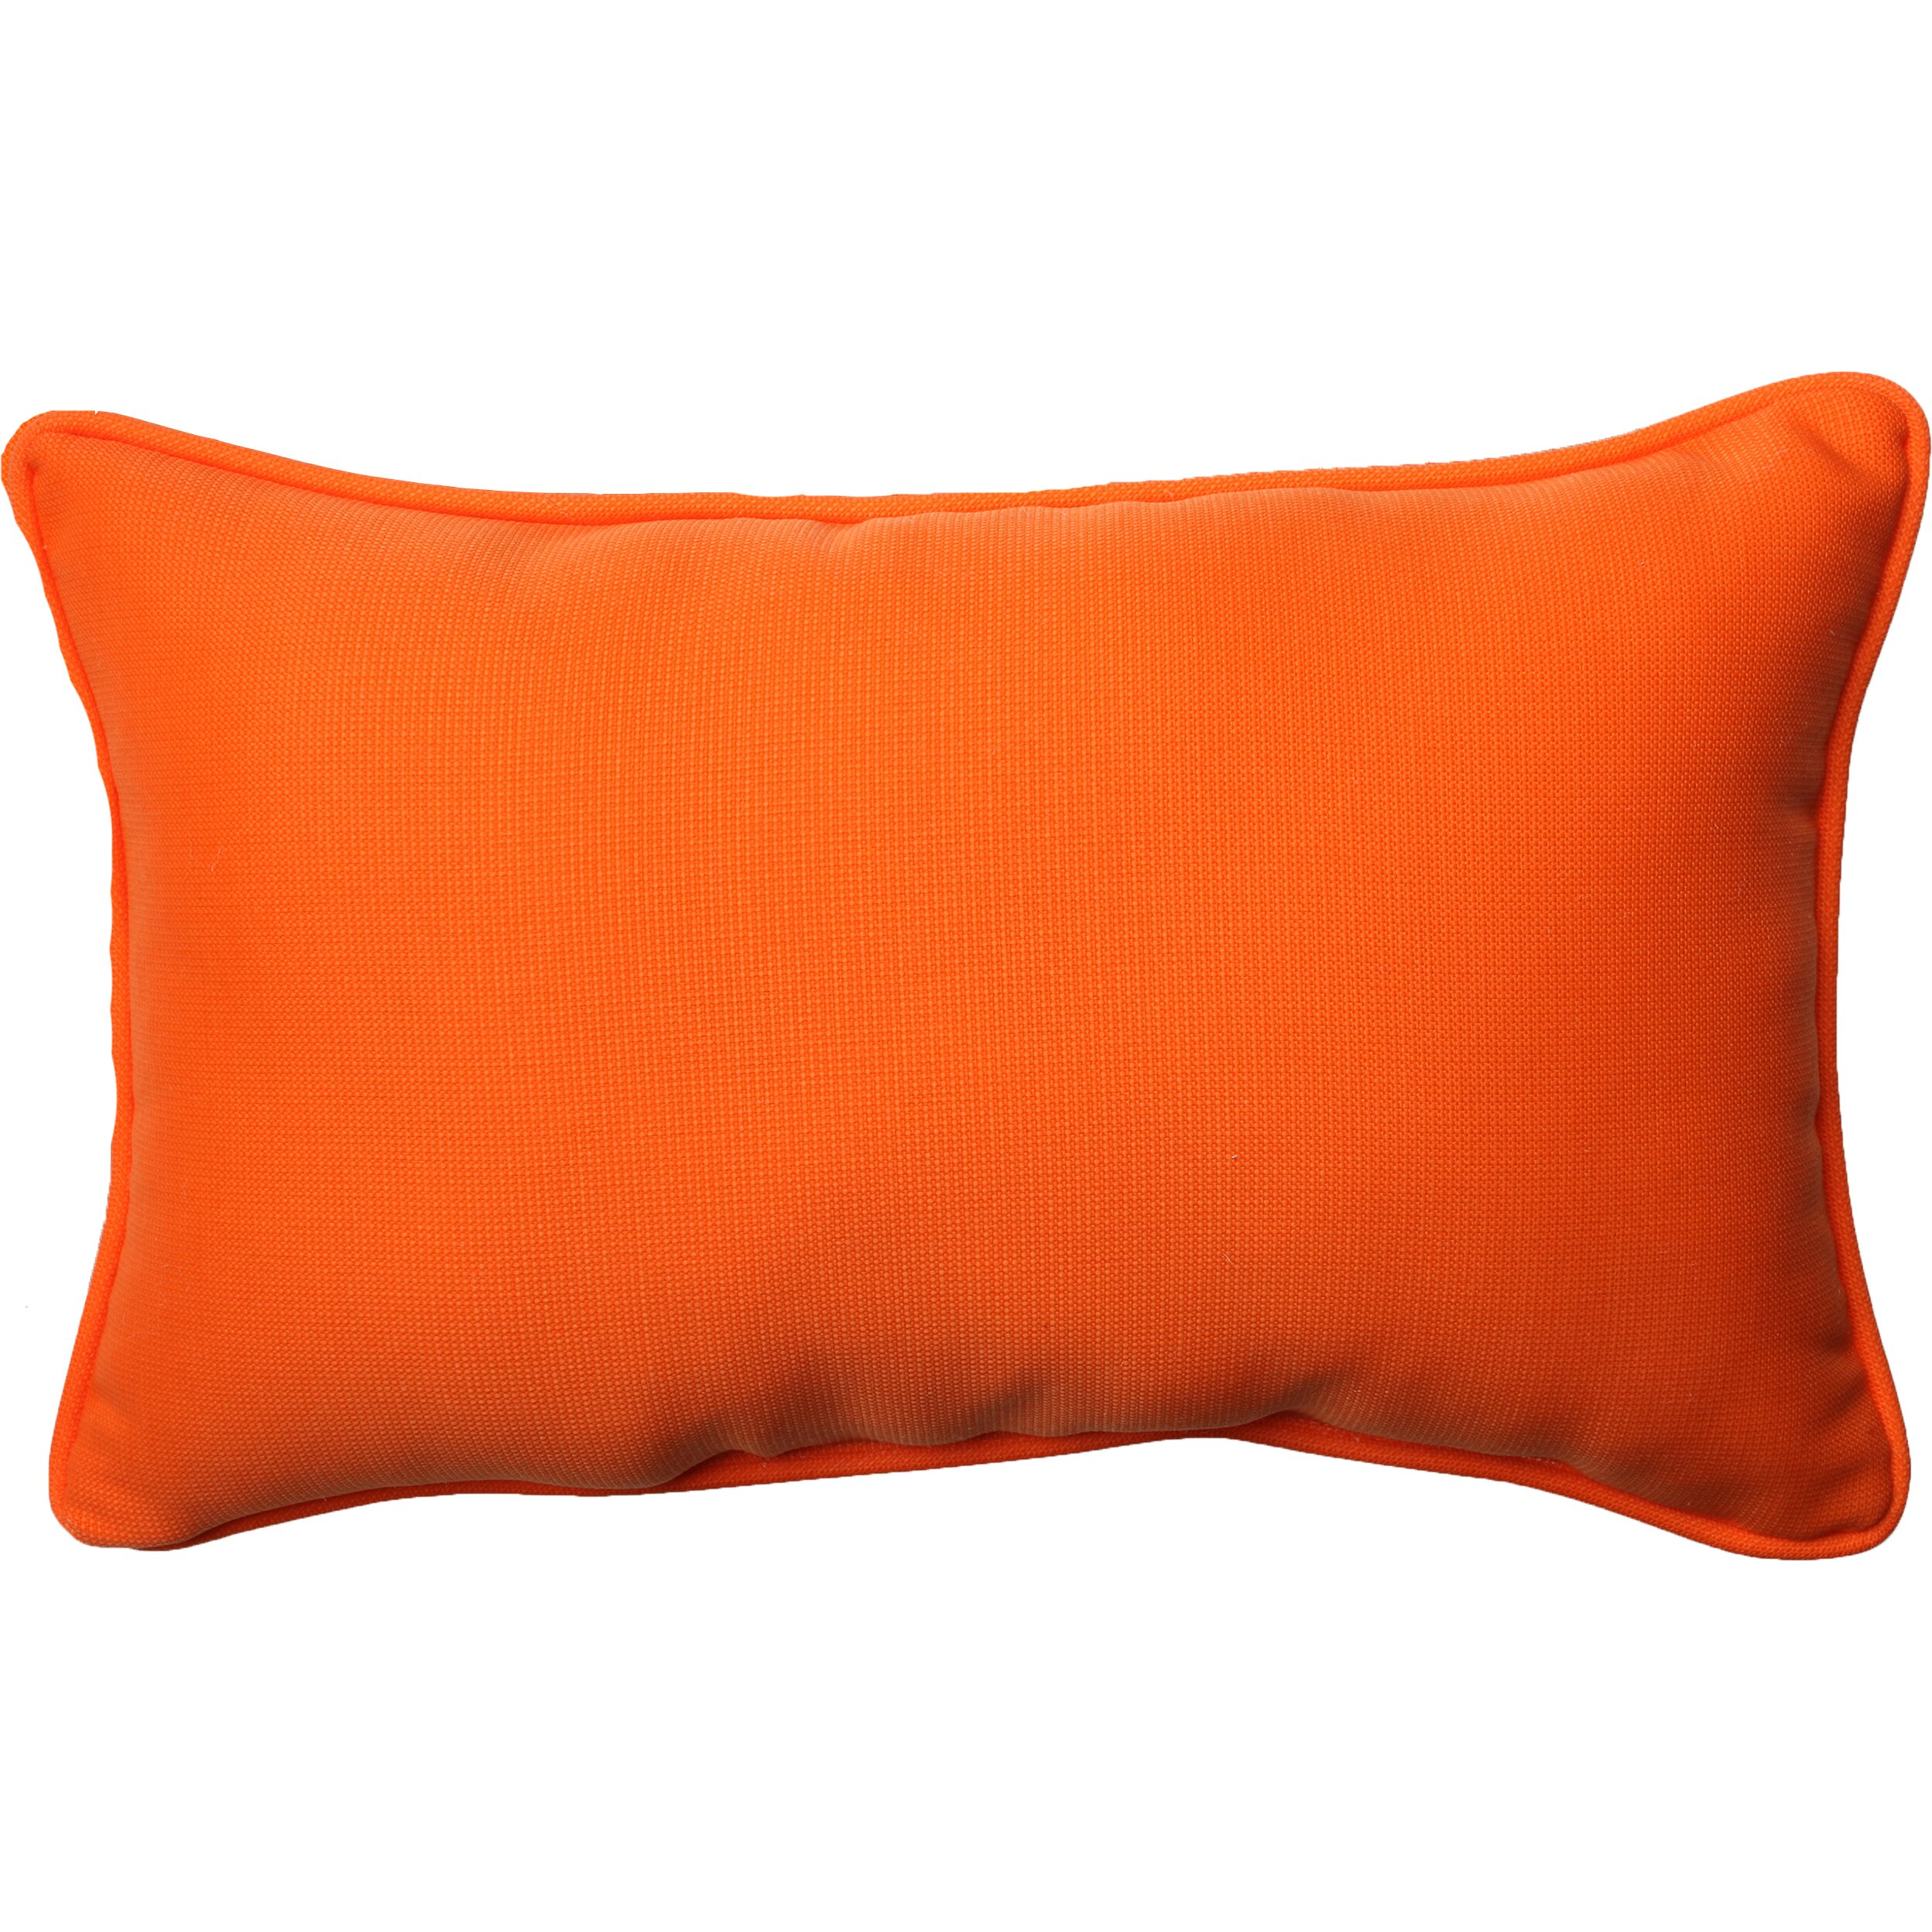 Pillow Perfect Sundeck Corded Indoor/Outdoor Throw Pillow & Reviews Wayfair.ca